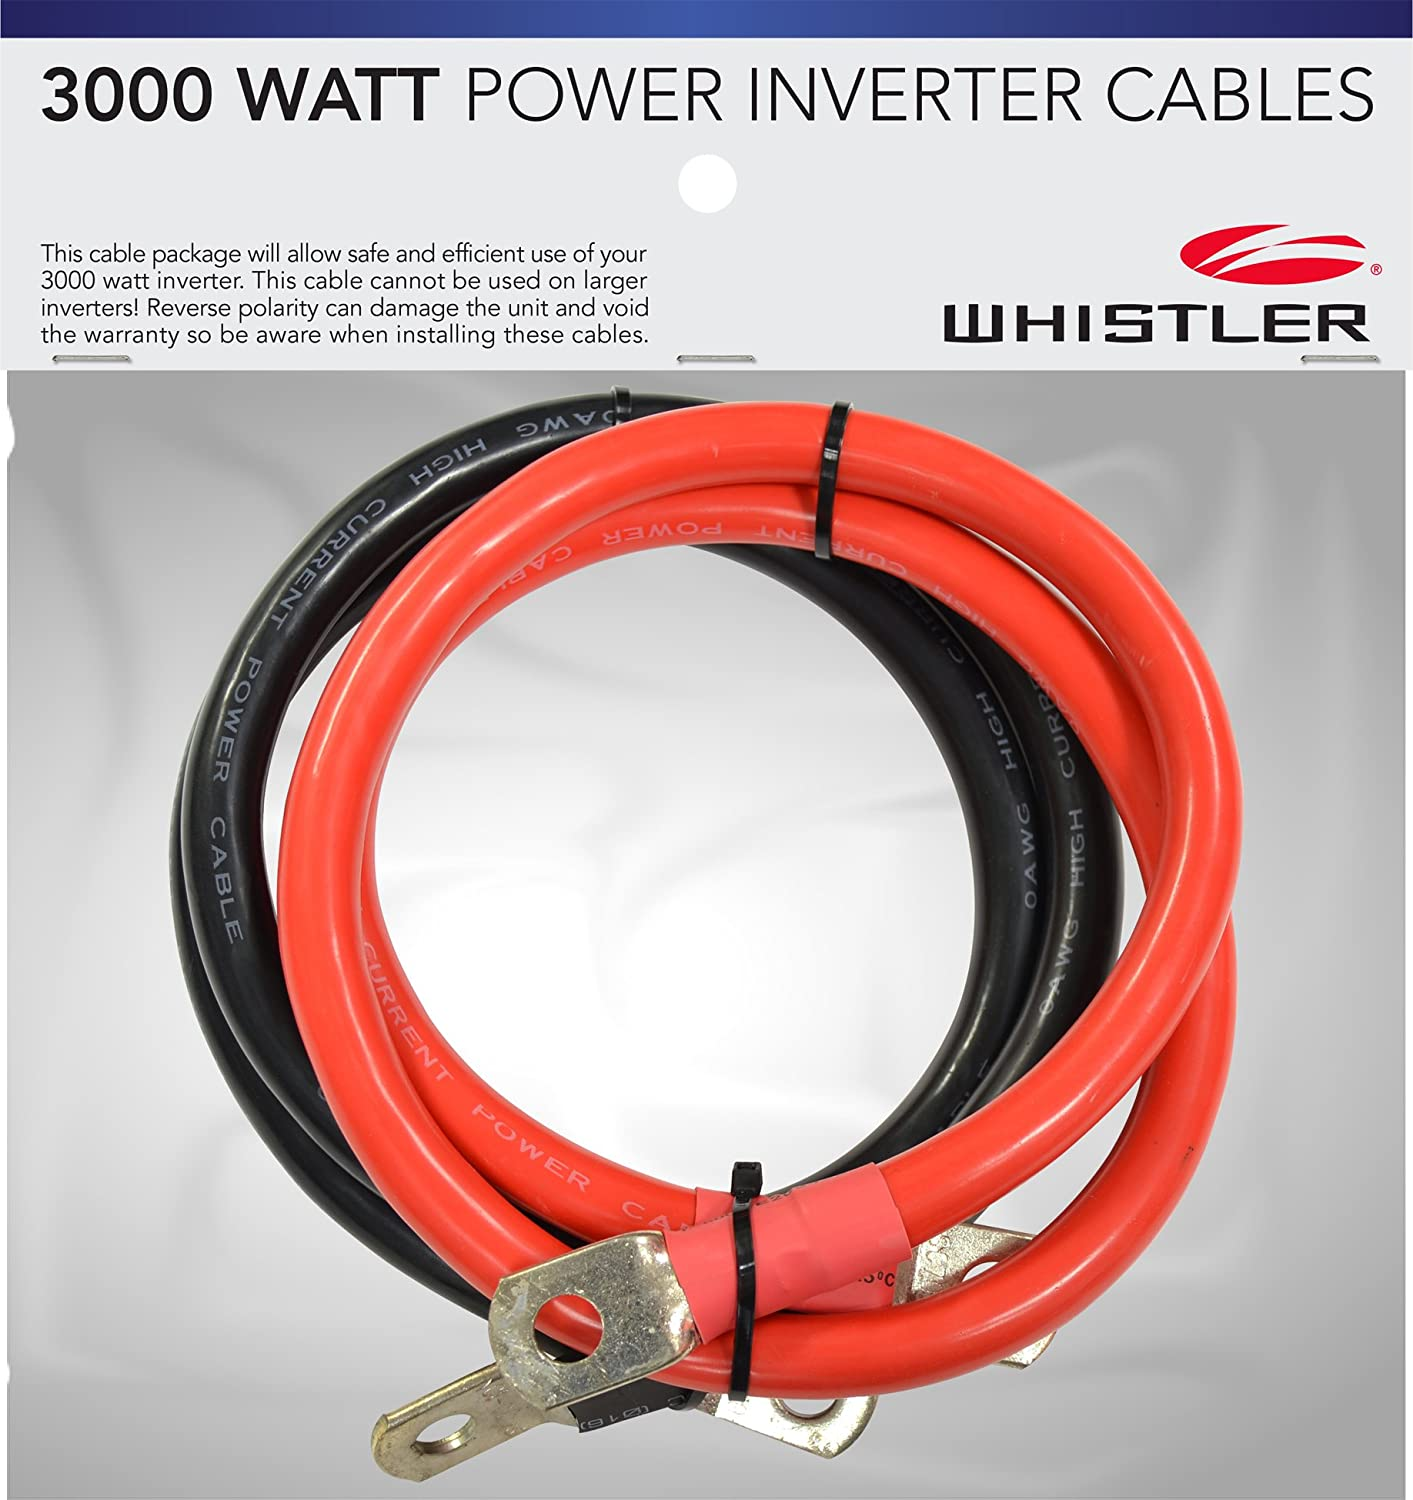 Wire guage for inverters wire center amazon com whistler ic 2000w power inverter cables with ring rh amazon com wire gauge chart speaker wire gauge greentooth Choice Image